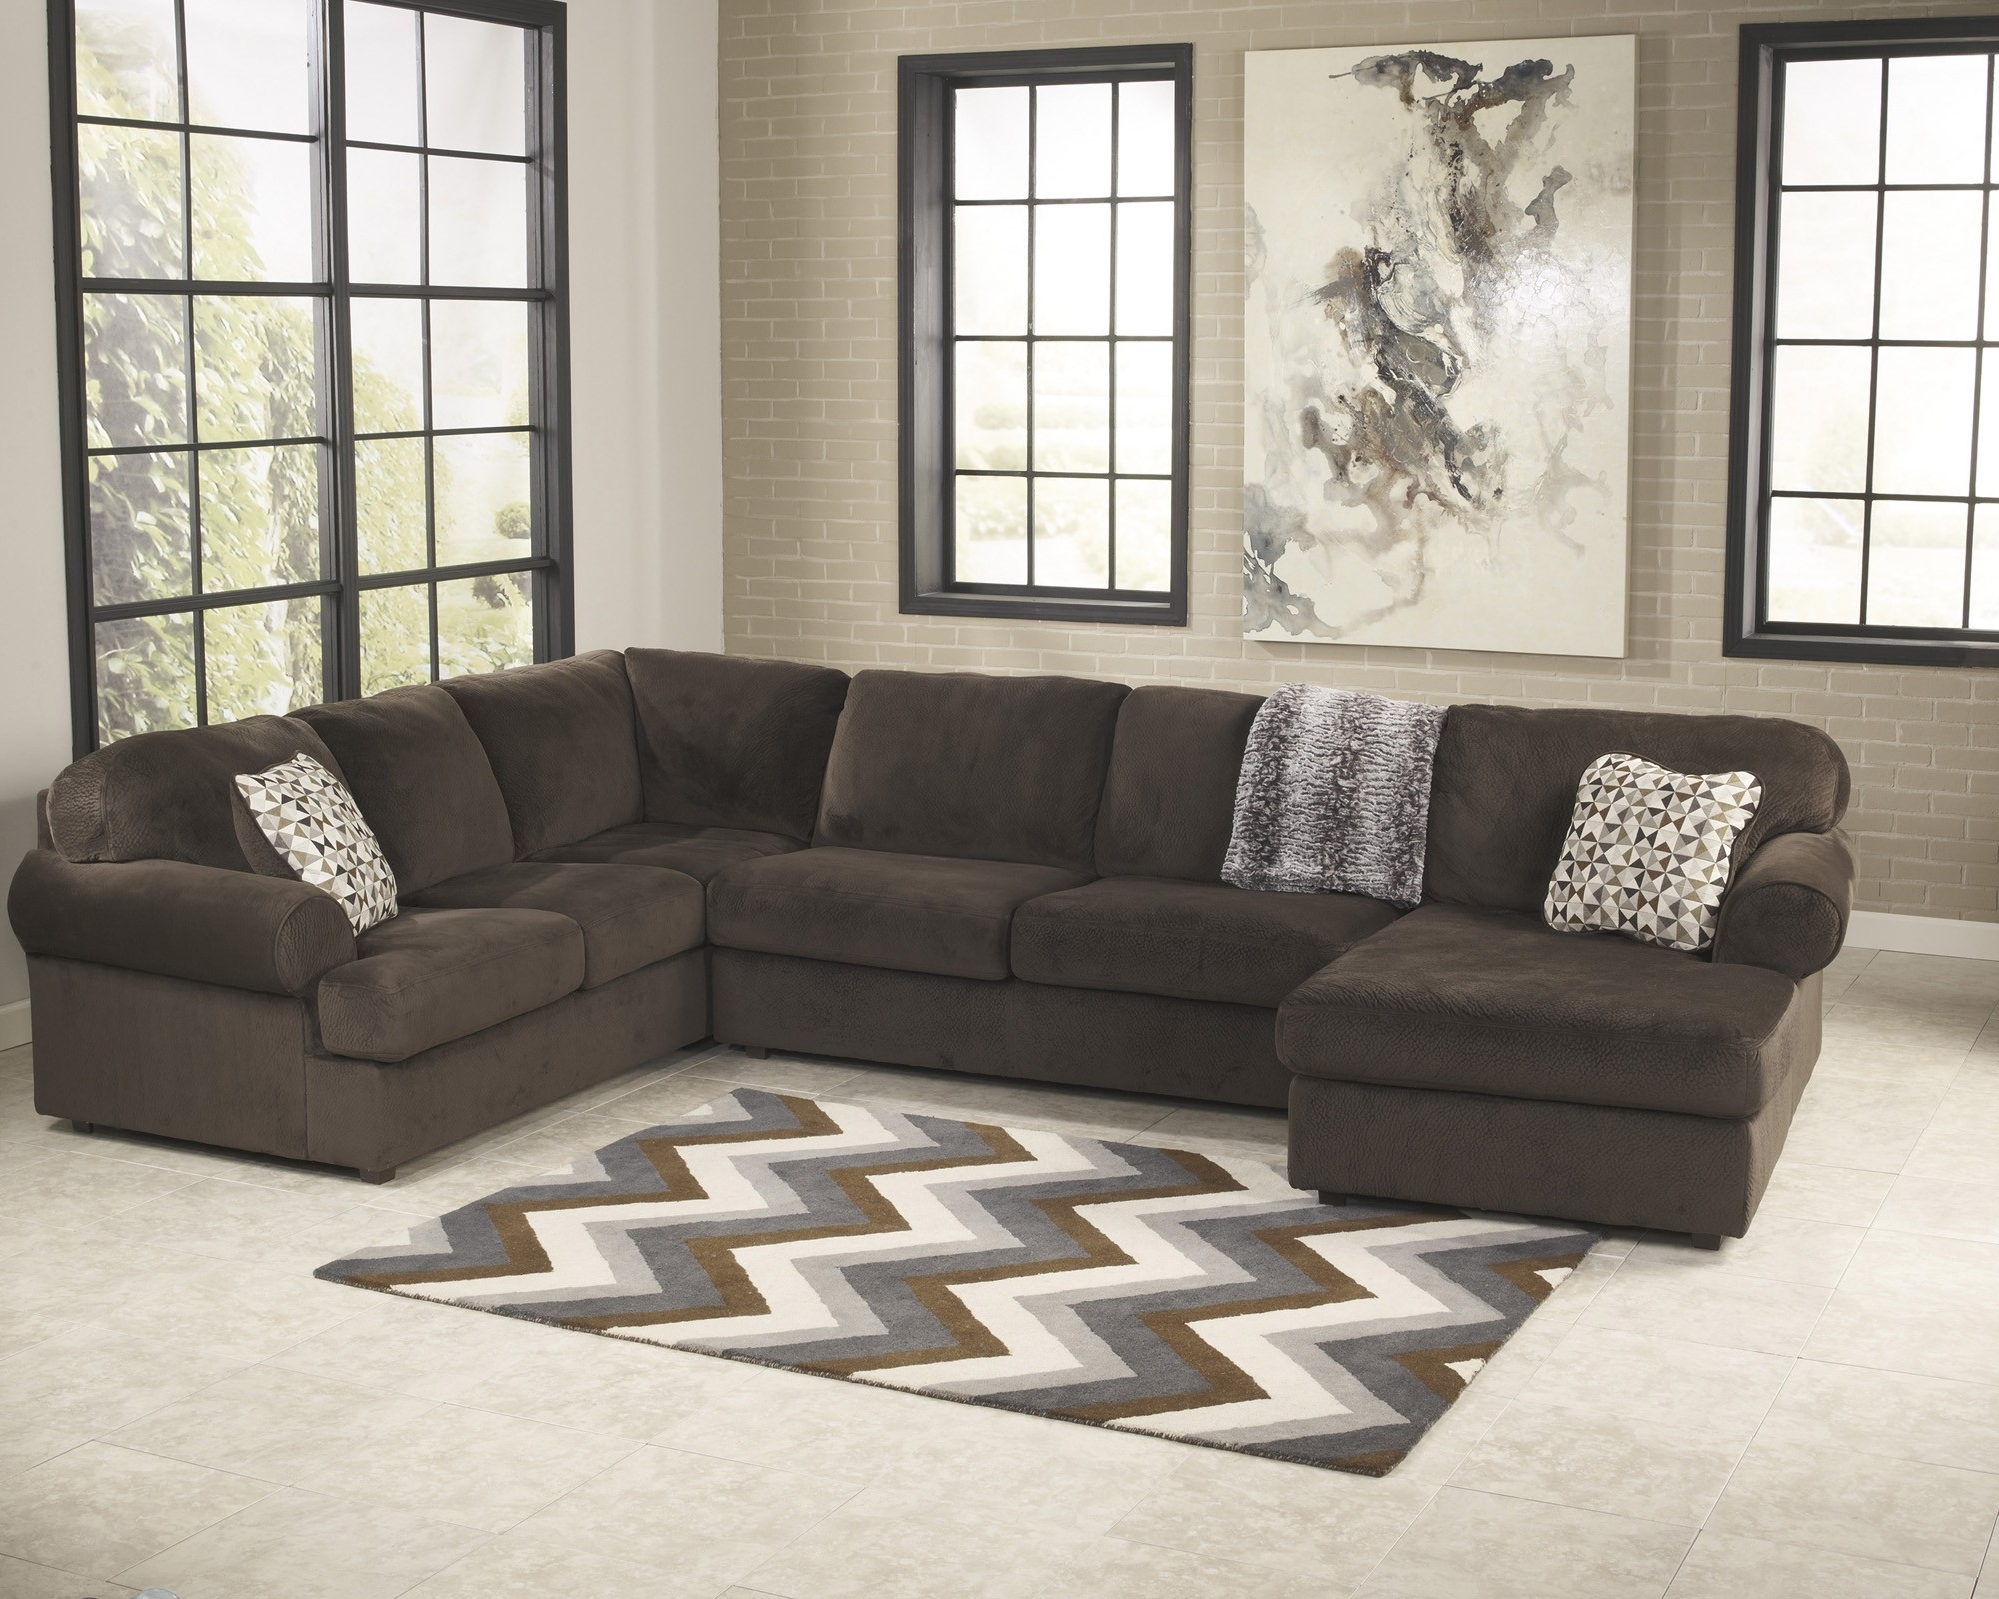 Most Recently Released Chairs : Jessa Place Chocolate Piece Sectional Sofa For Sofas Sale Regarding Sectional Sofas In Greenville Sc (View 9 of 15)